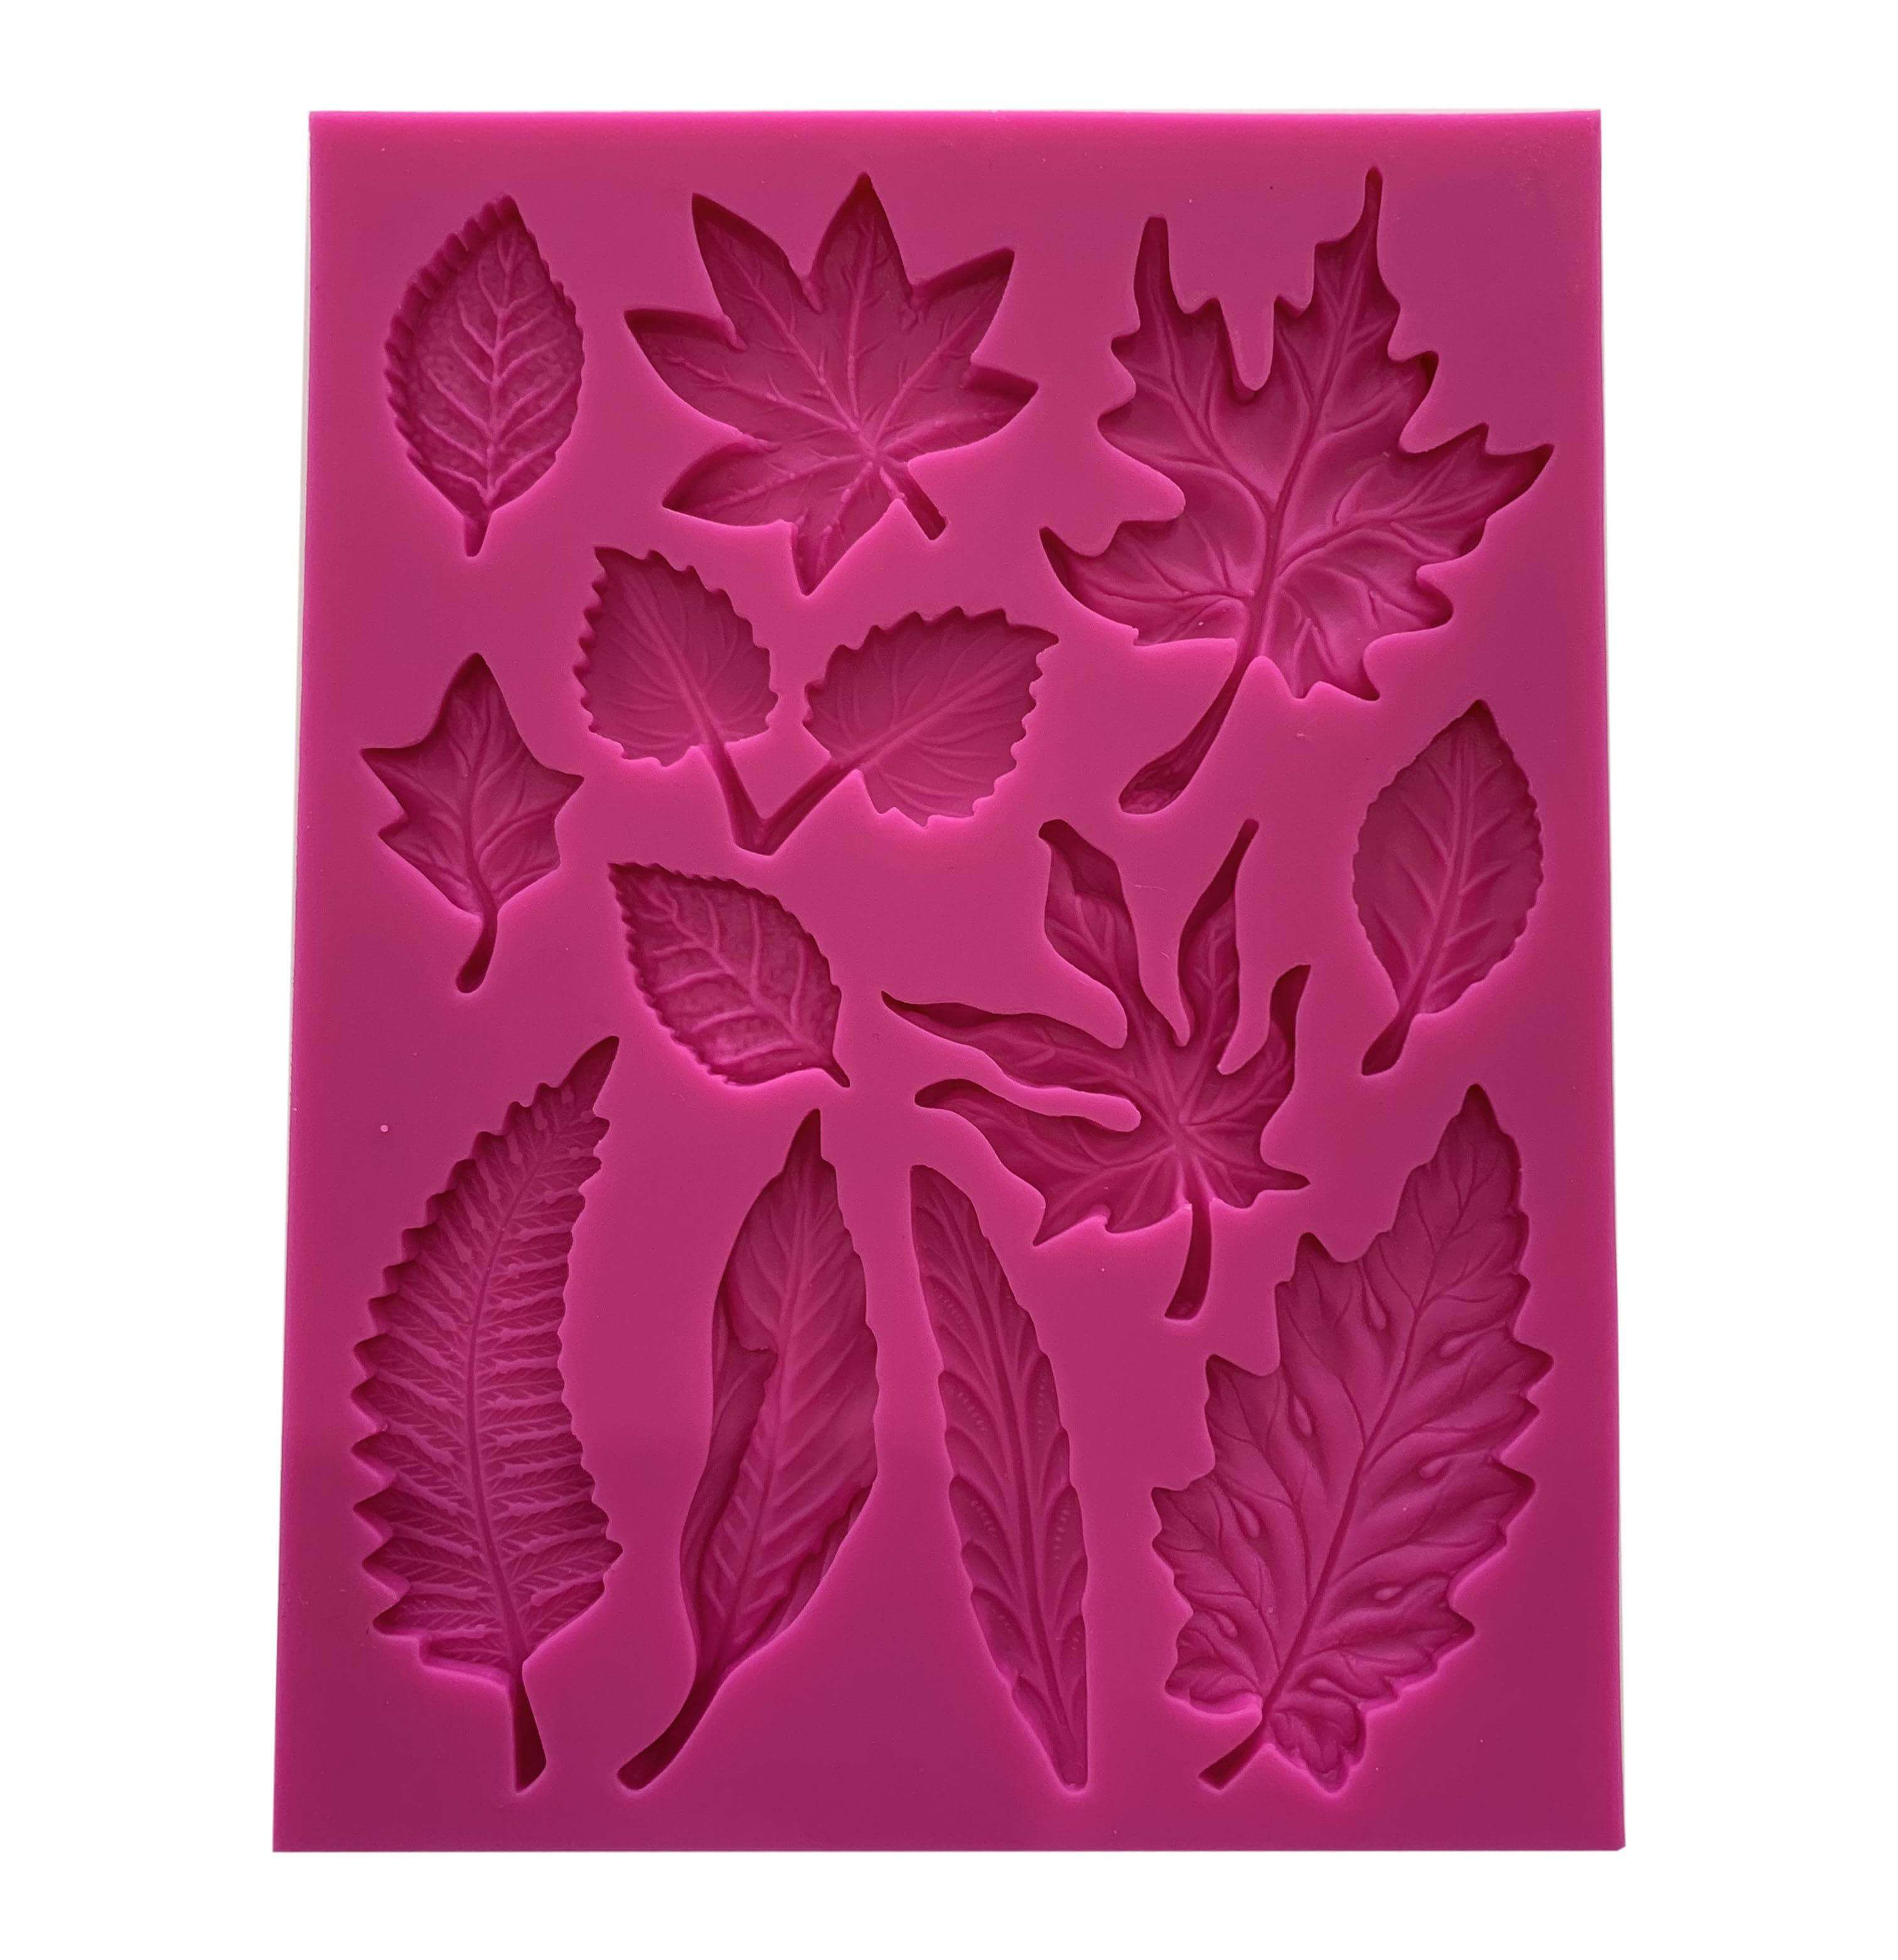 Tree leaf silicone mold jewelry mold craft mold clay mold ...  Plane Tree Leaf Silicone Molds